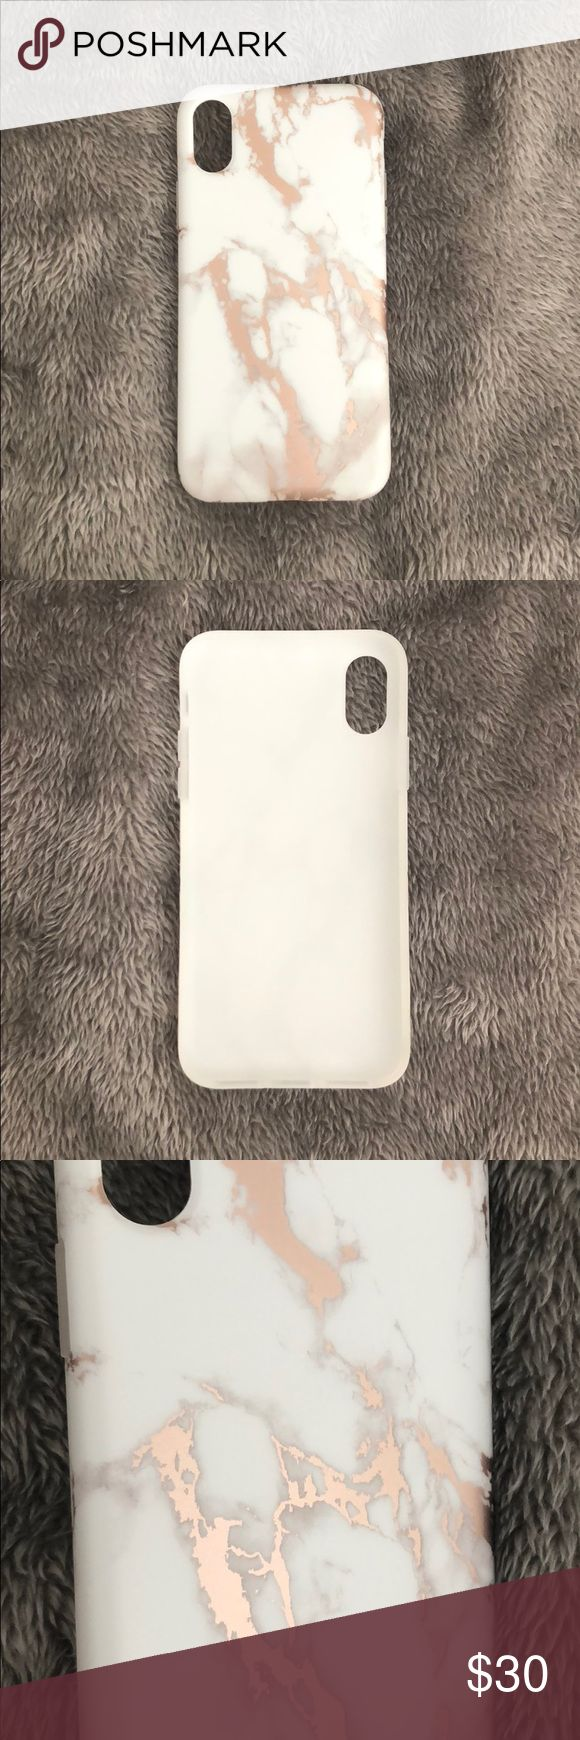 Brand New iPhone X case Brand New iPhone X case. White marble with rose gold. The rose gold has a chrome finish. The case is rubber with a rubber lip for extra screen protection. Accessories Phone Cases